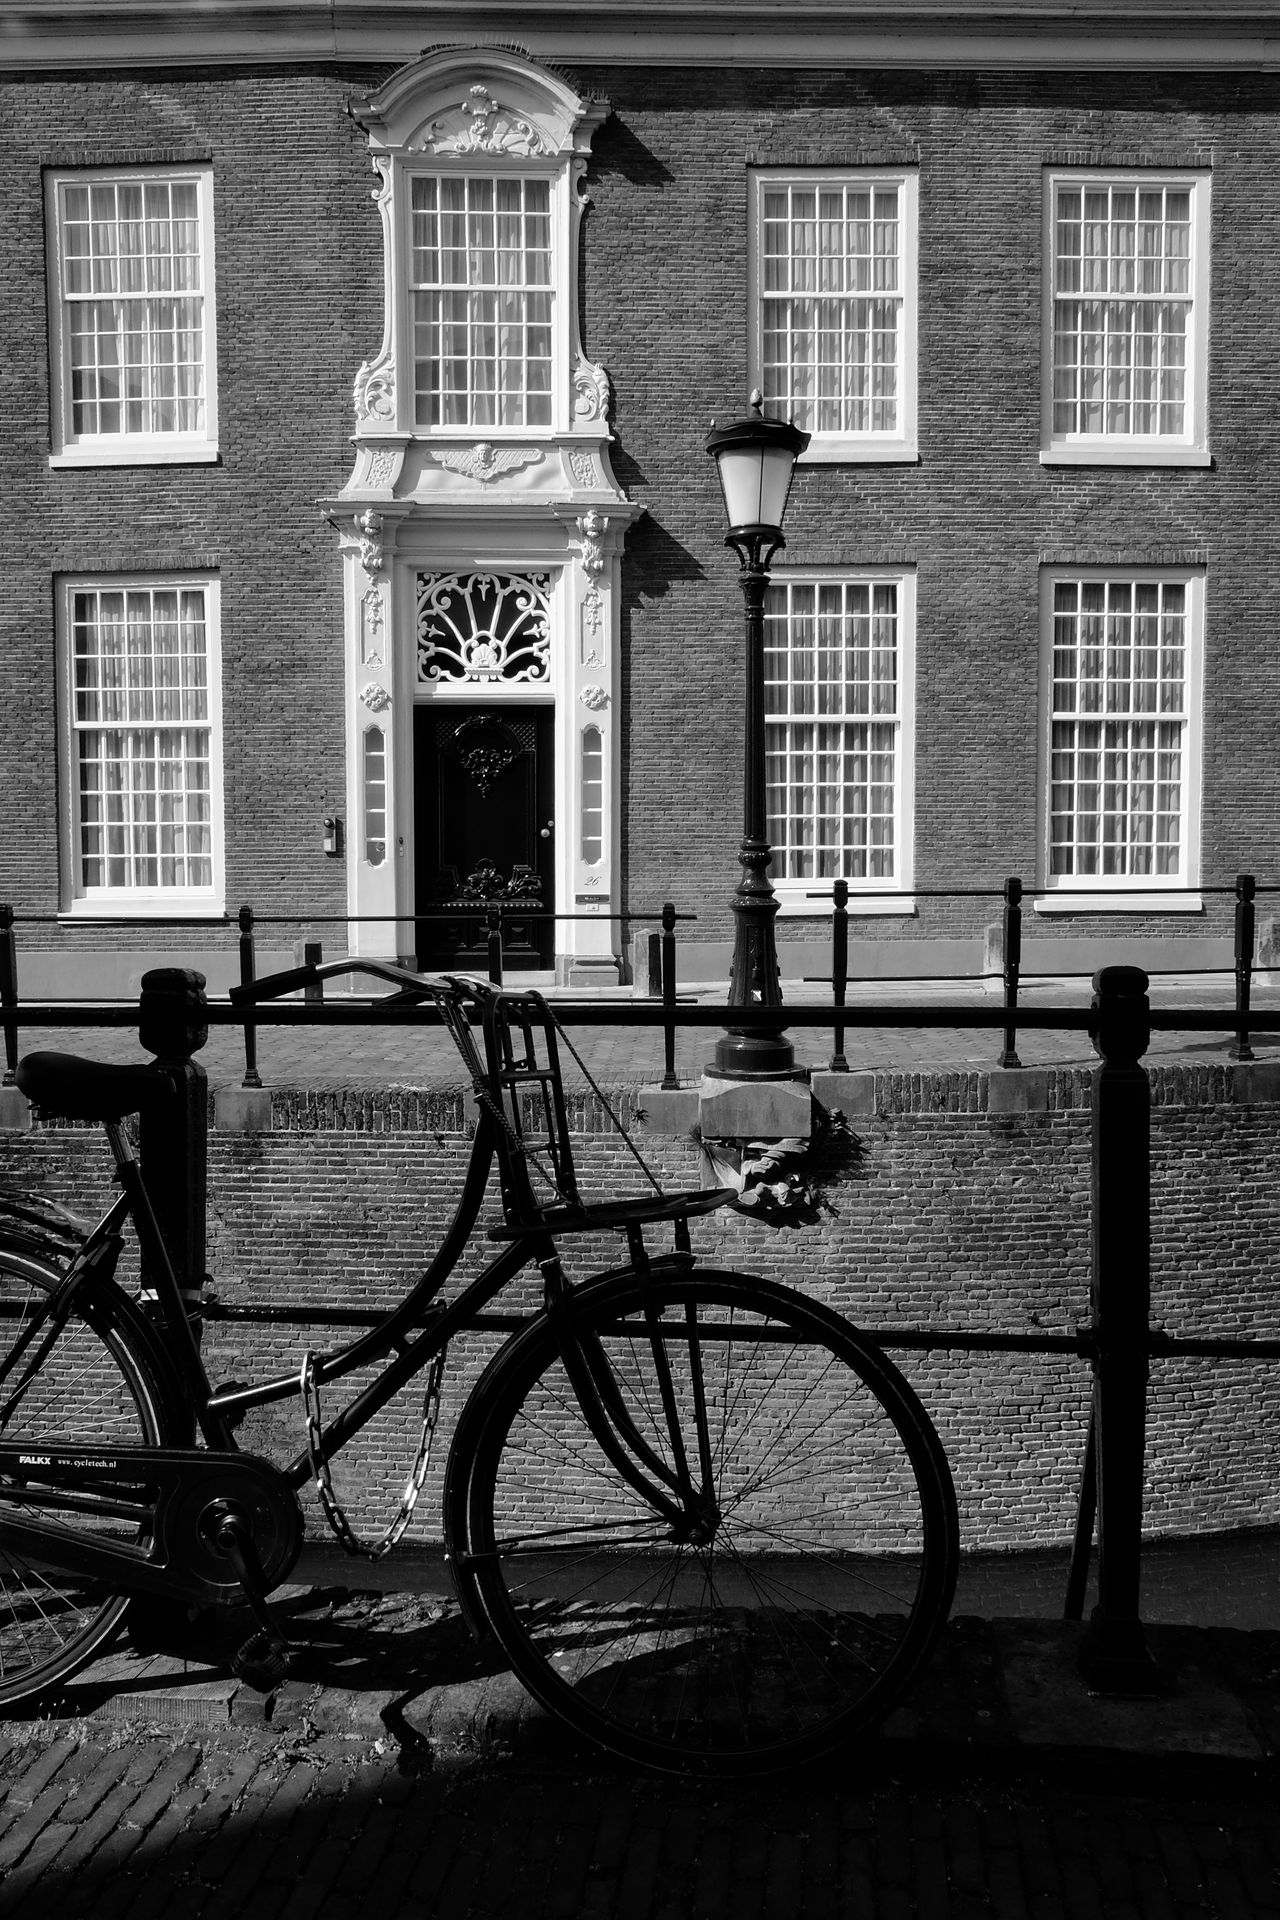 Bicycle and building Architecture B&w Bicycle Blackandwhite Building Exterior Built Structure City City Day Land Vehicle Mode Of Transport Monochrome No People Outdoors Shadow Sidewalk Stationary Transportation Urban Utrecht